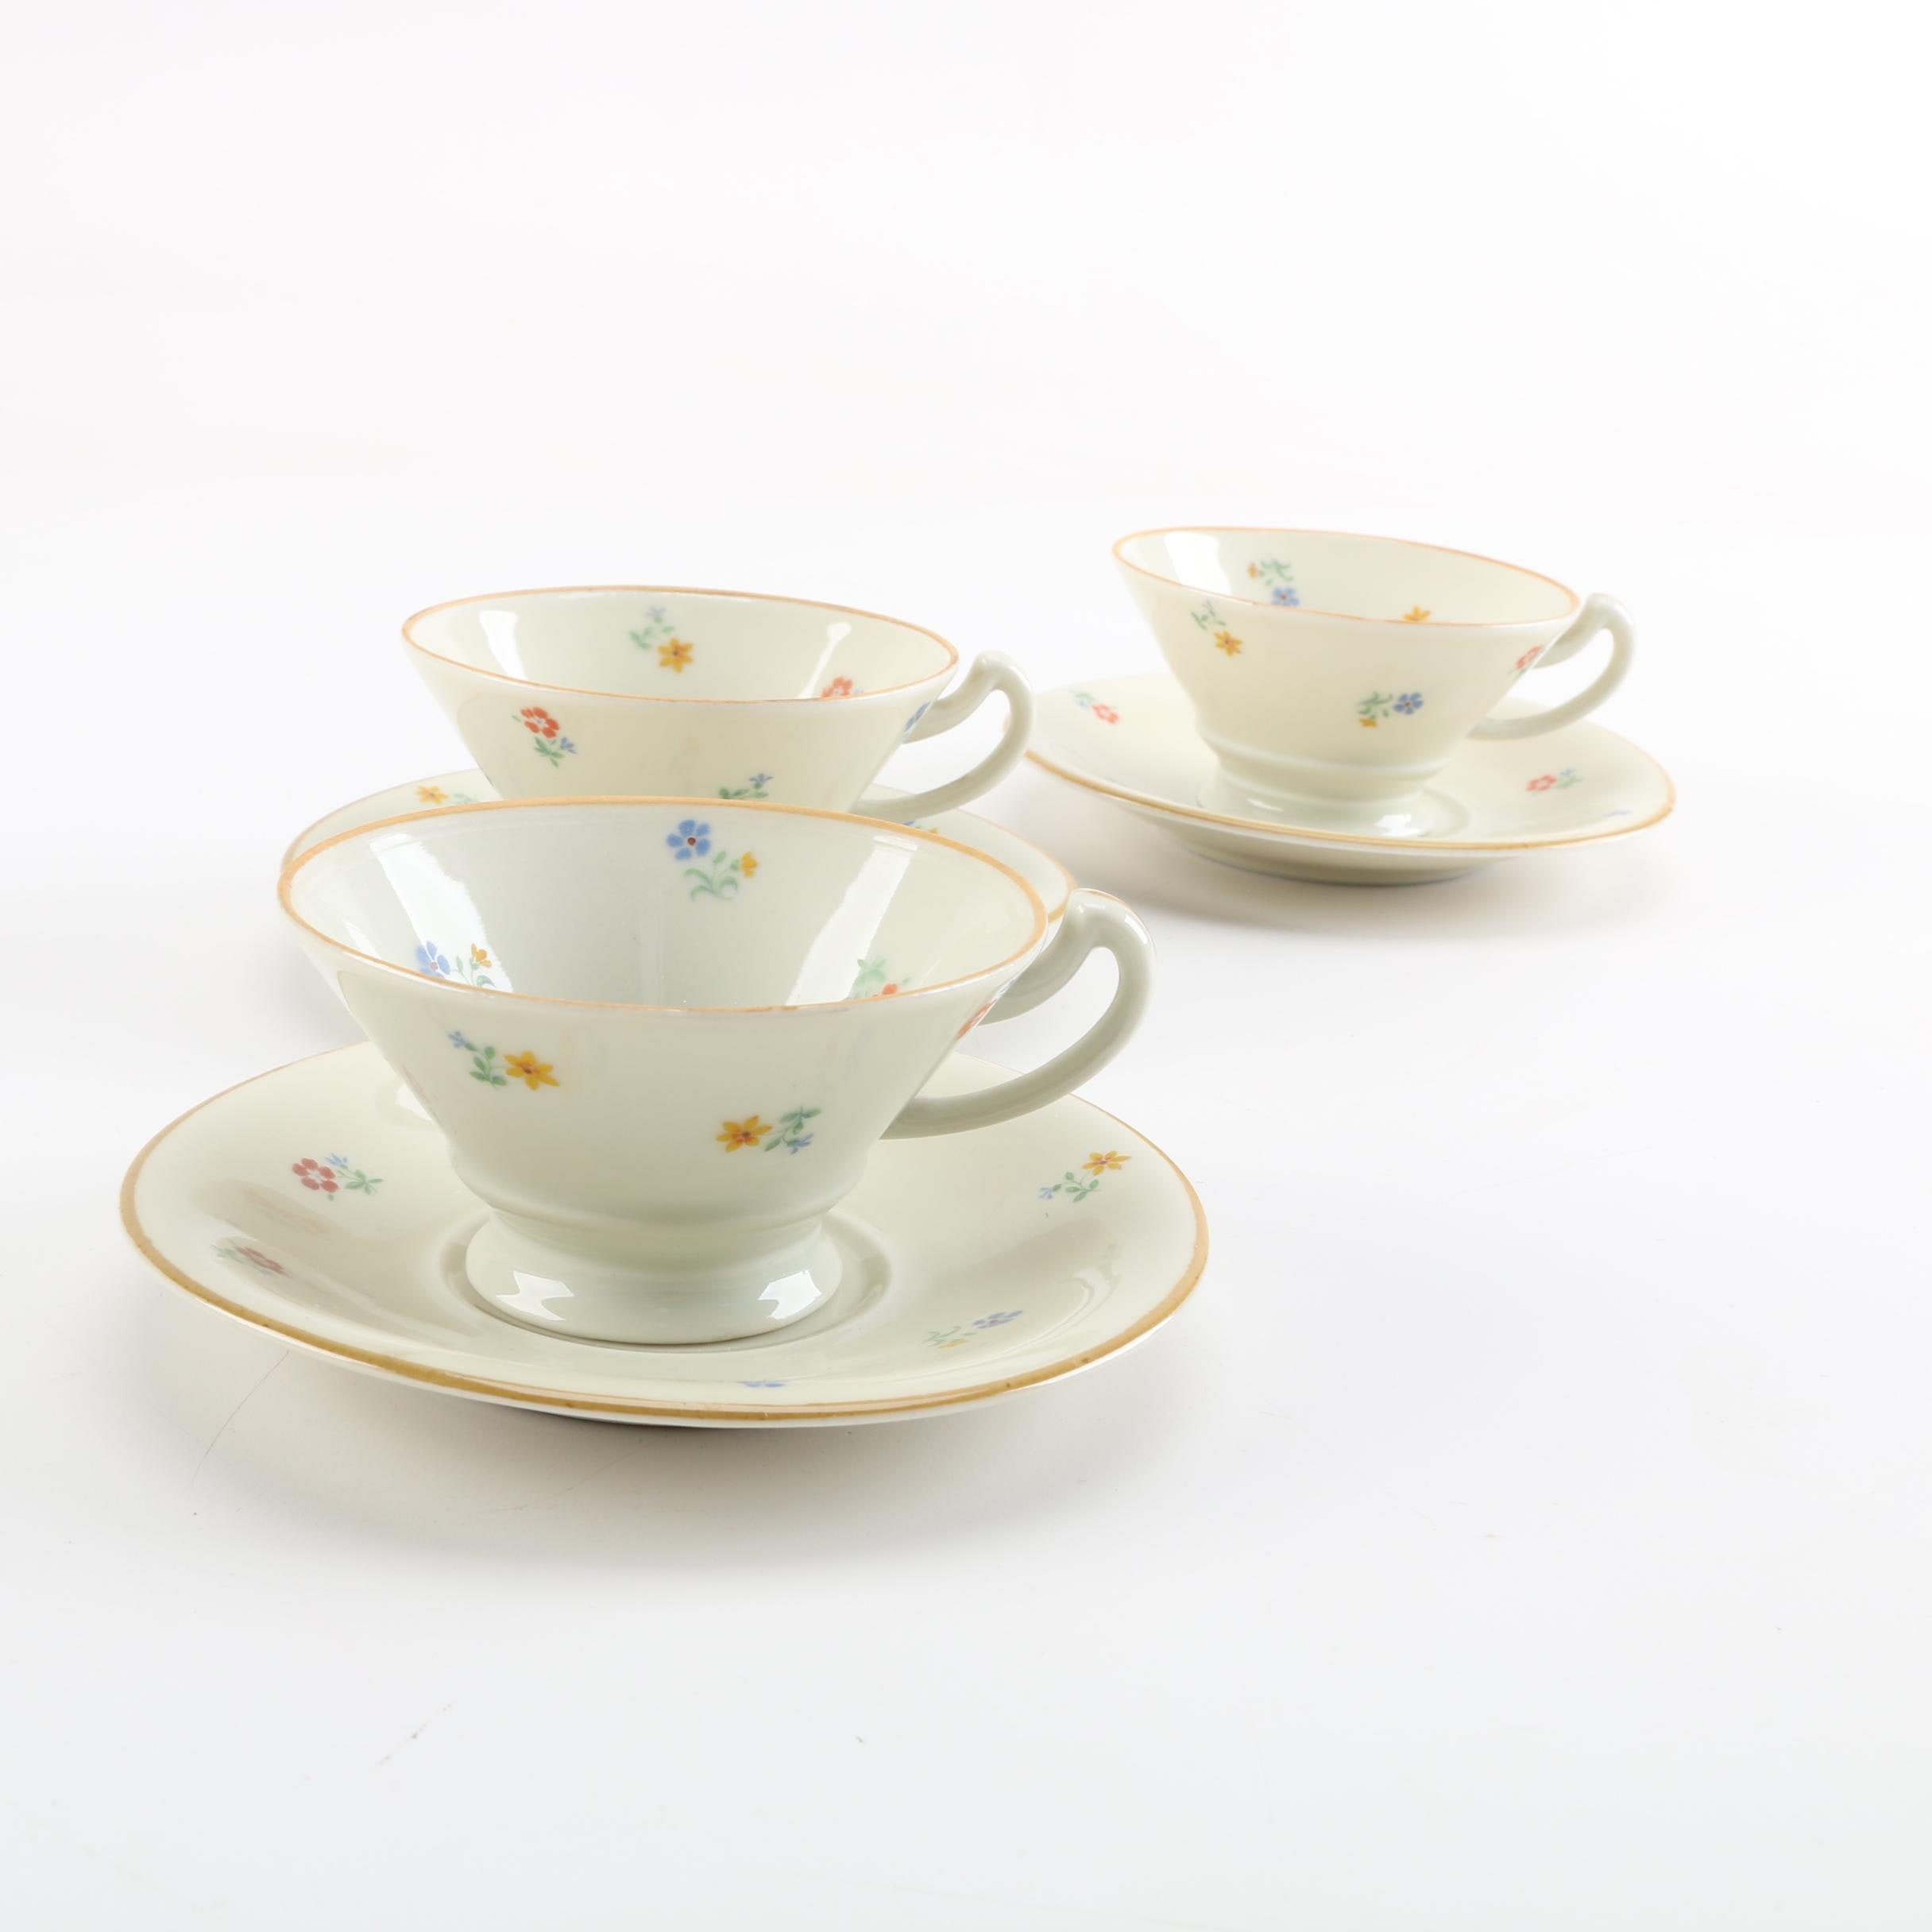 Vintage AL-KA Porcelain Demitasse Cups and Saucers